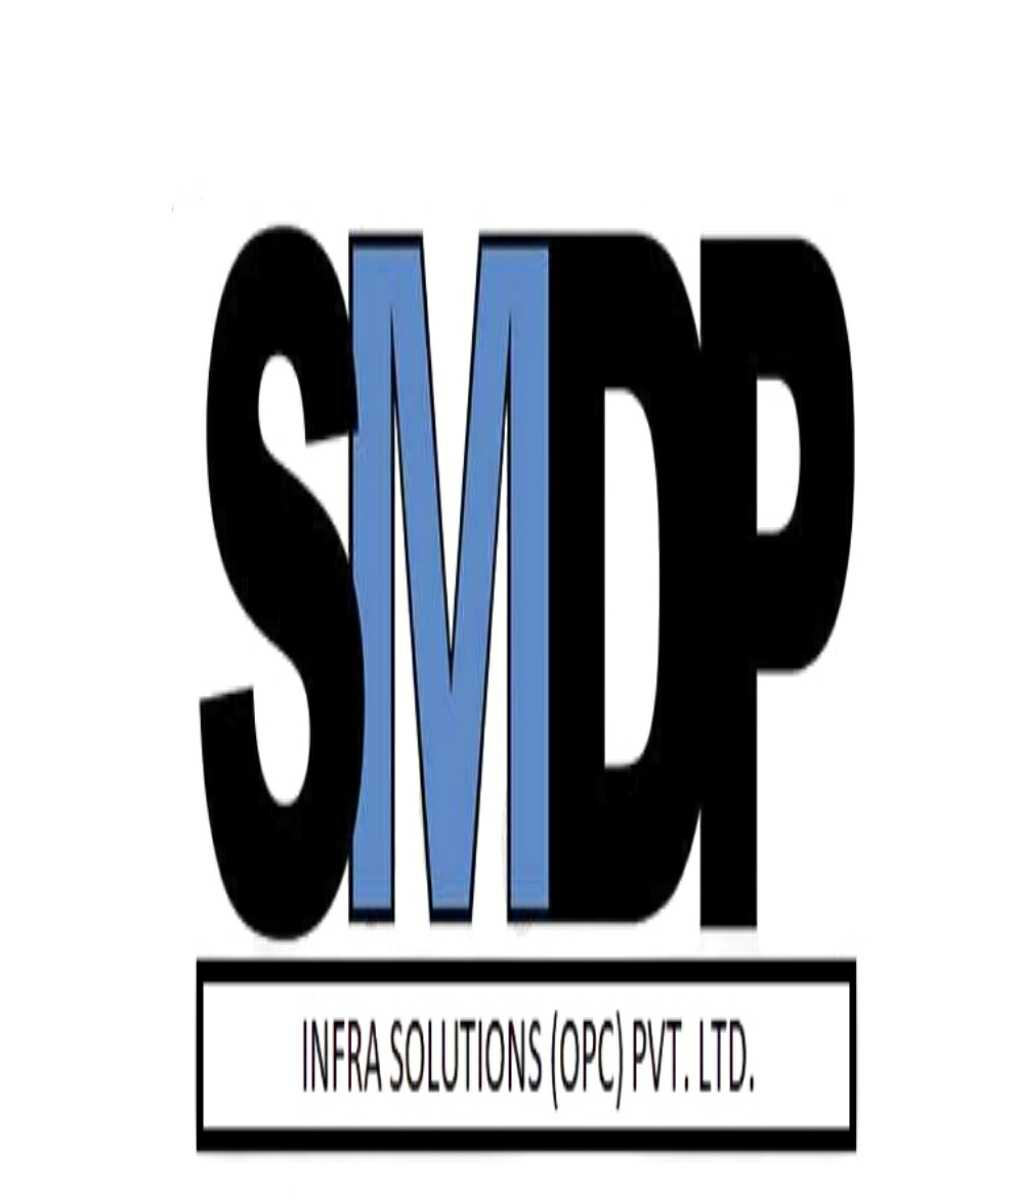 SMDP INFRASOLUTIONS (OPC) PRIVATE LIMITED